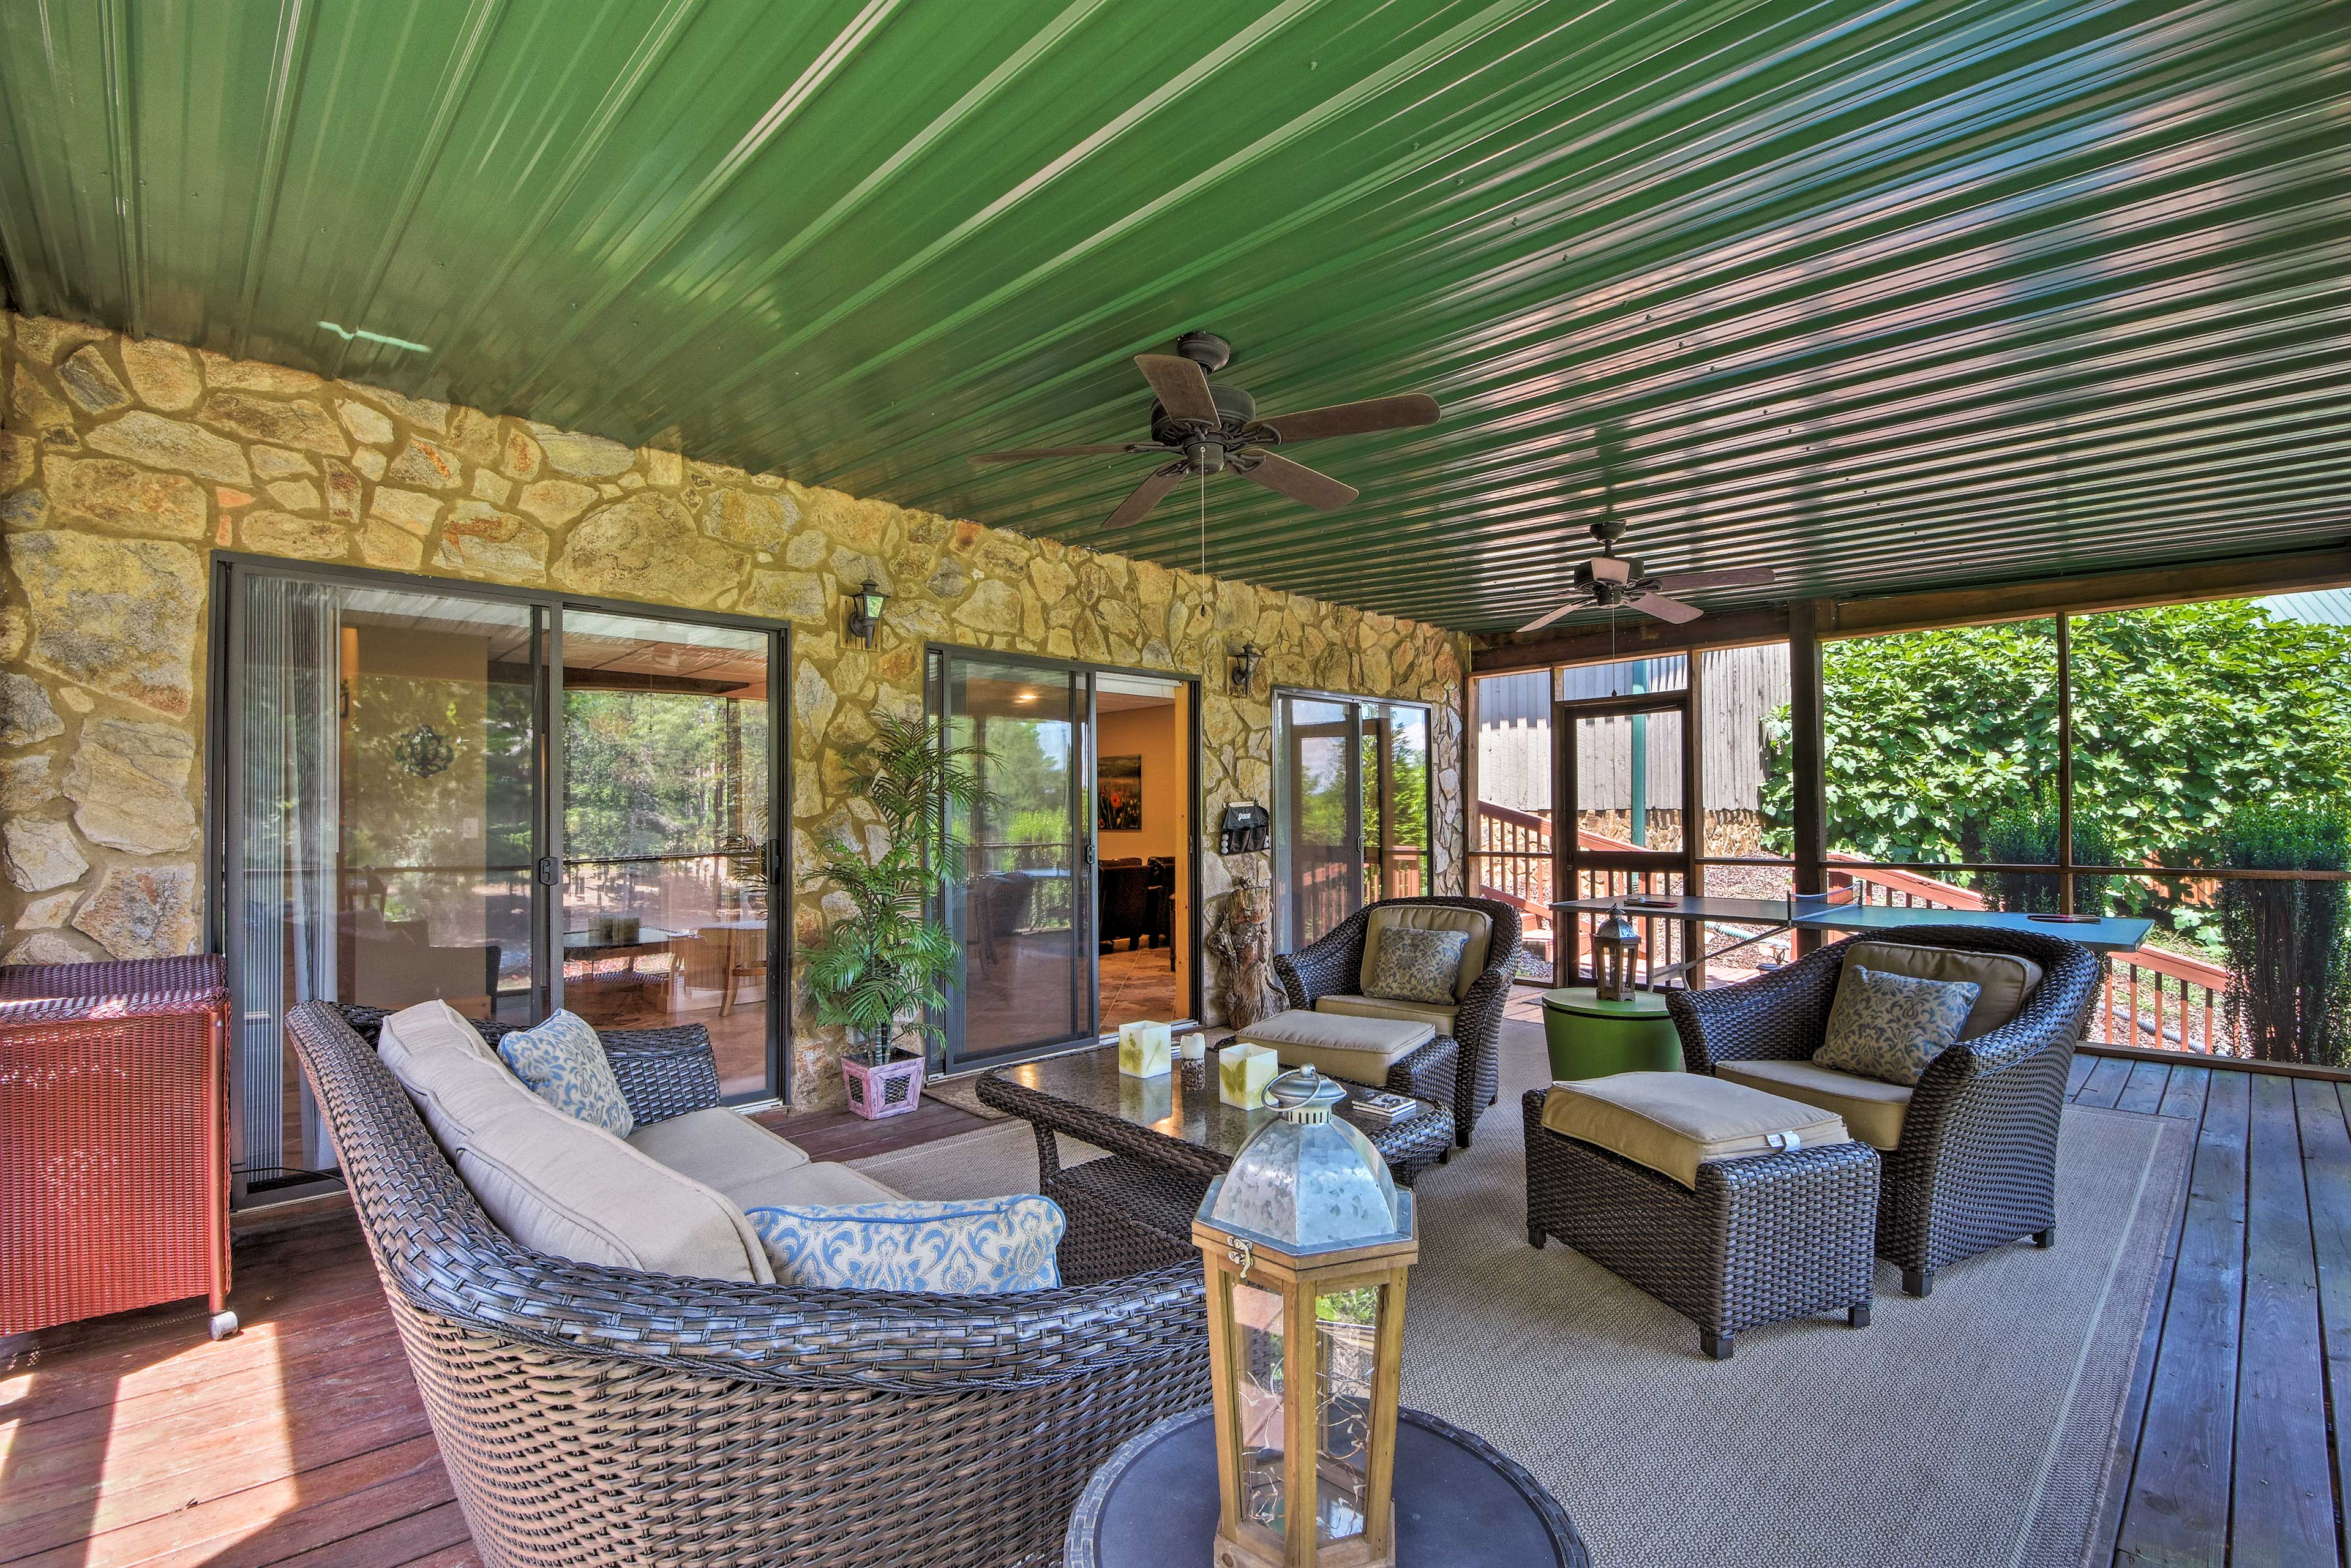 Relax in the screened-in porch surrounded by scenic views.